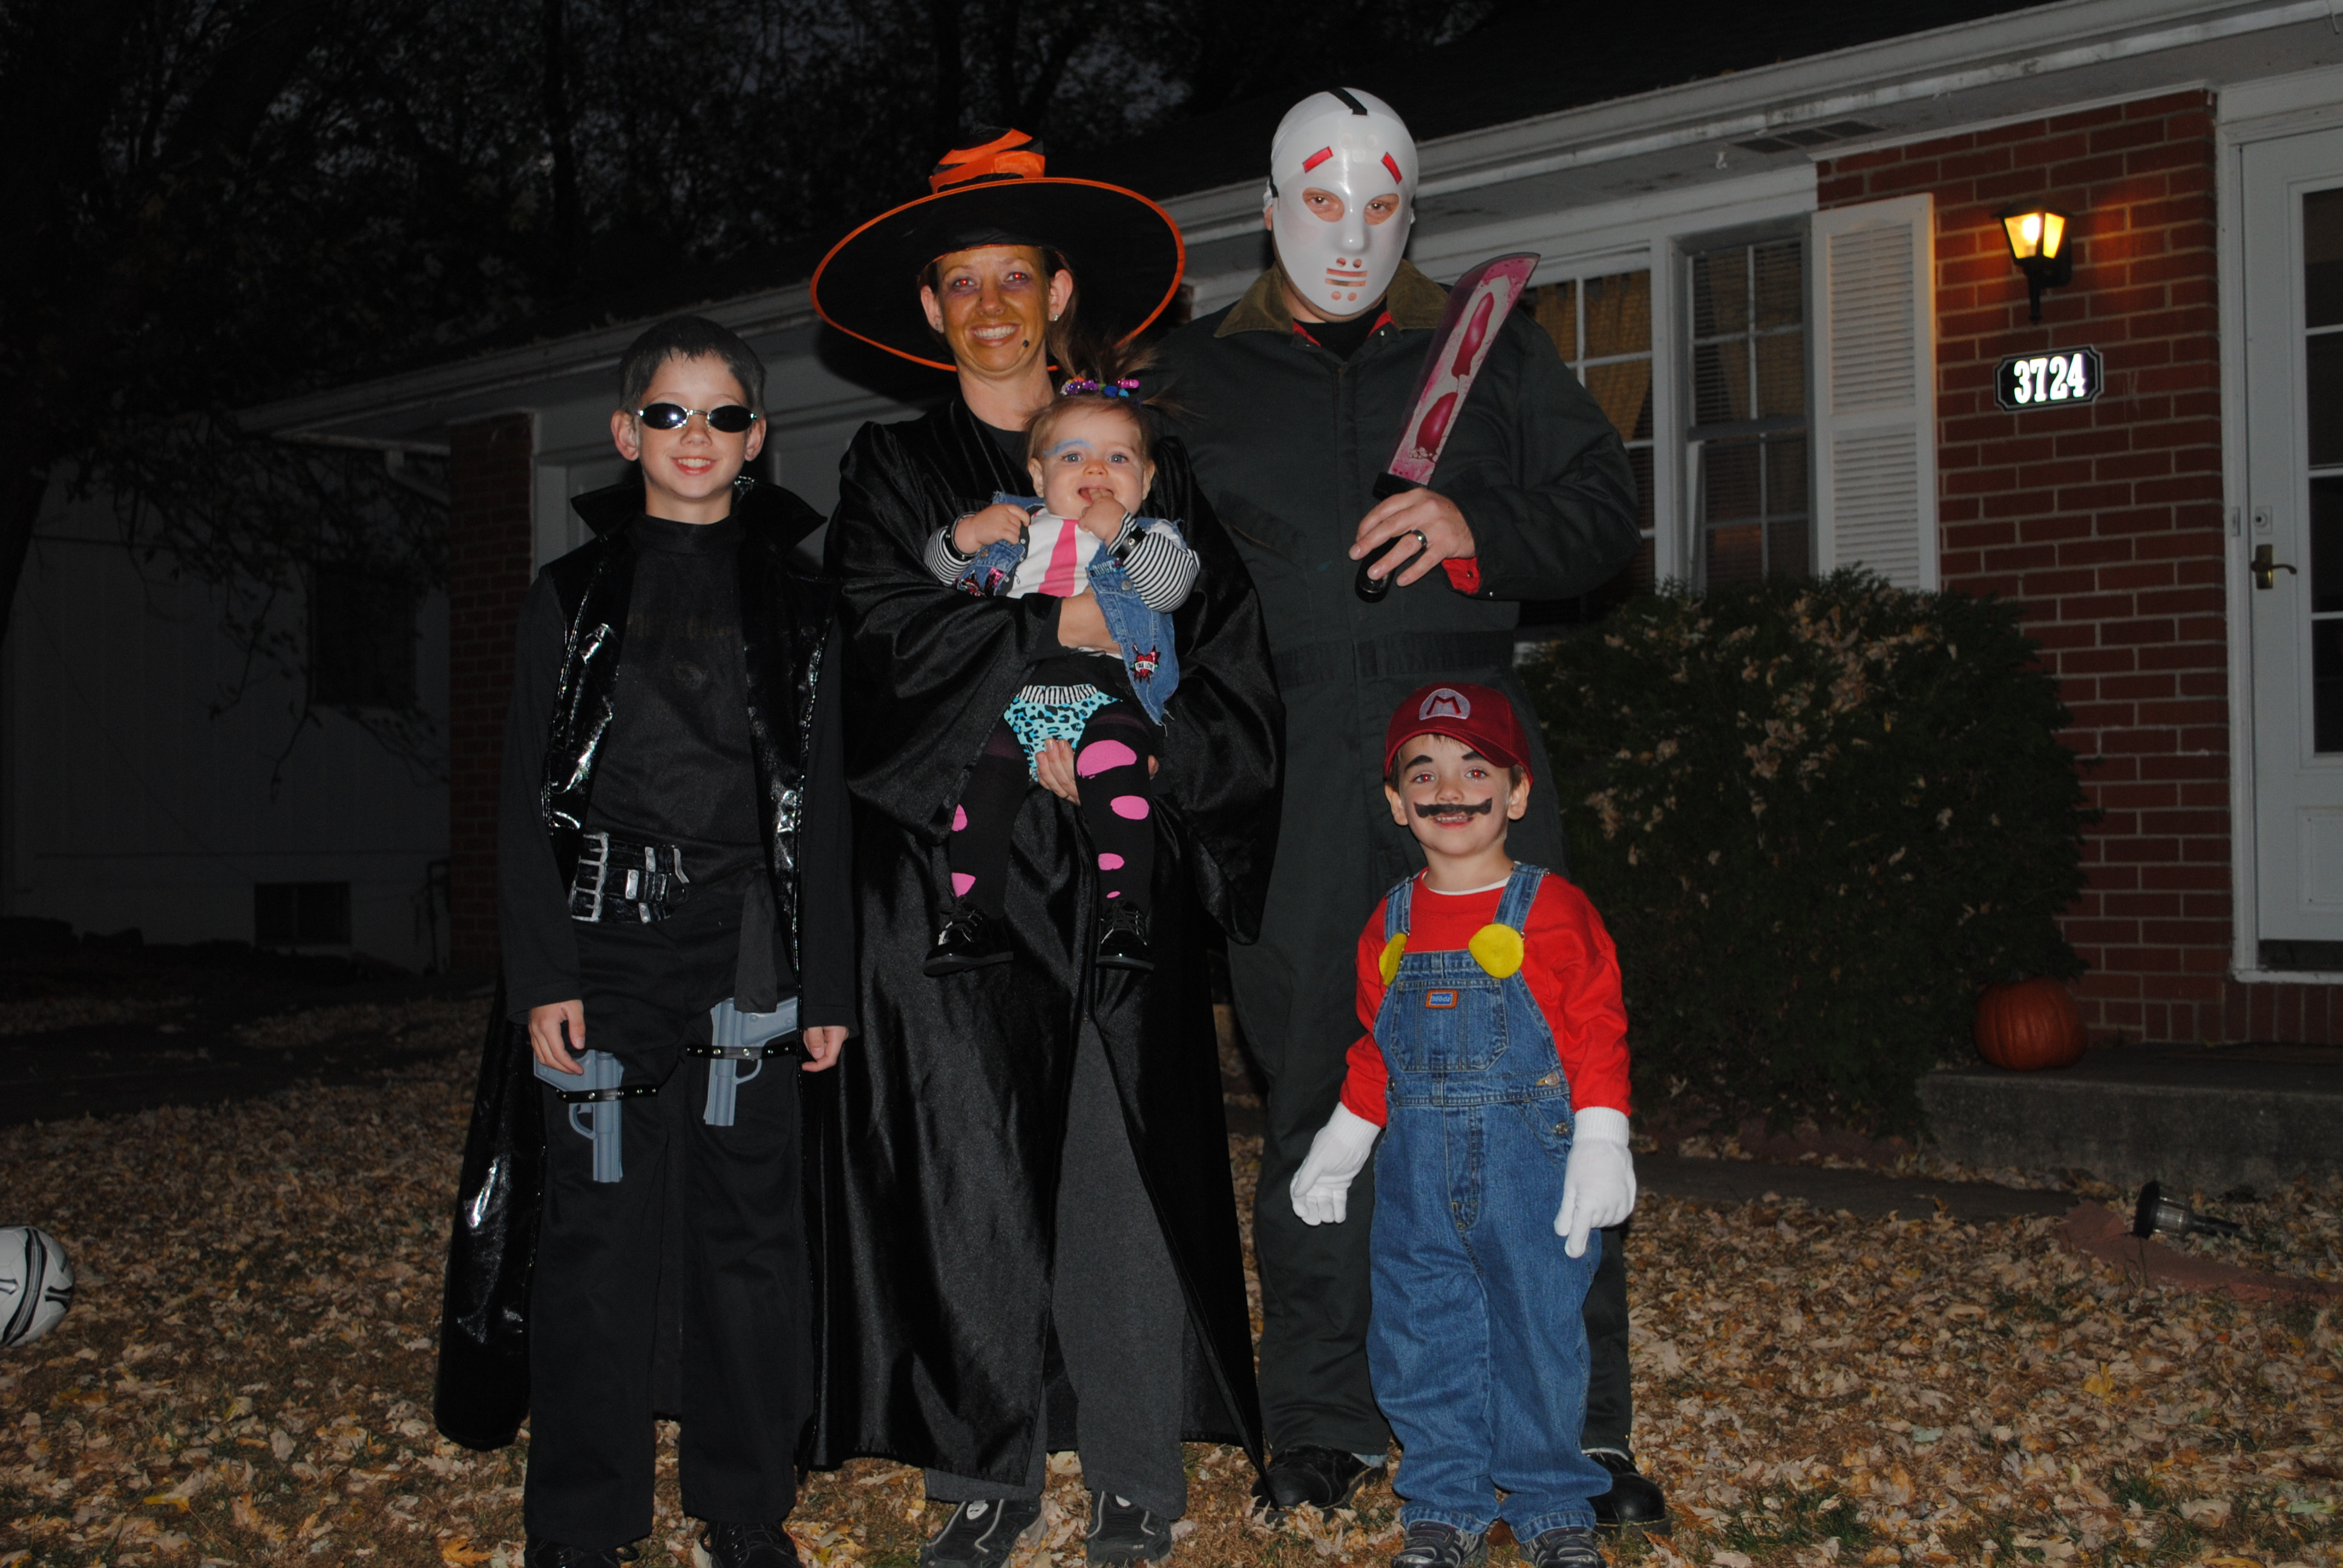 Trick-or-Treating in Blue Ridge-Oakland